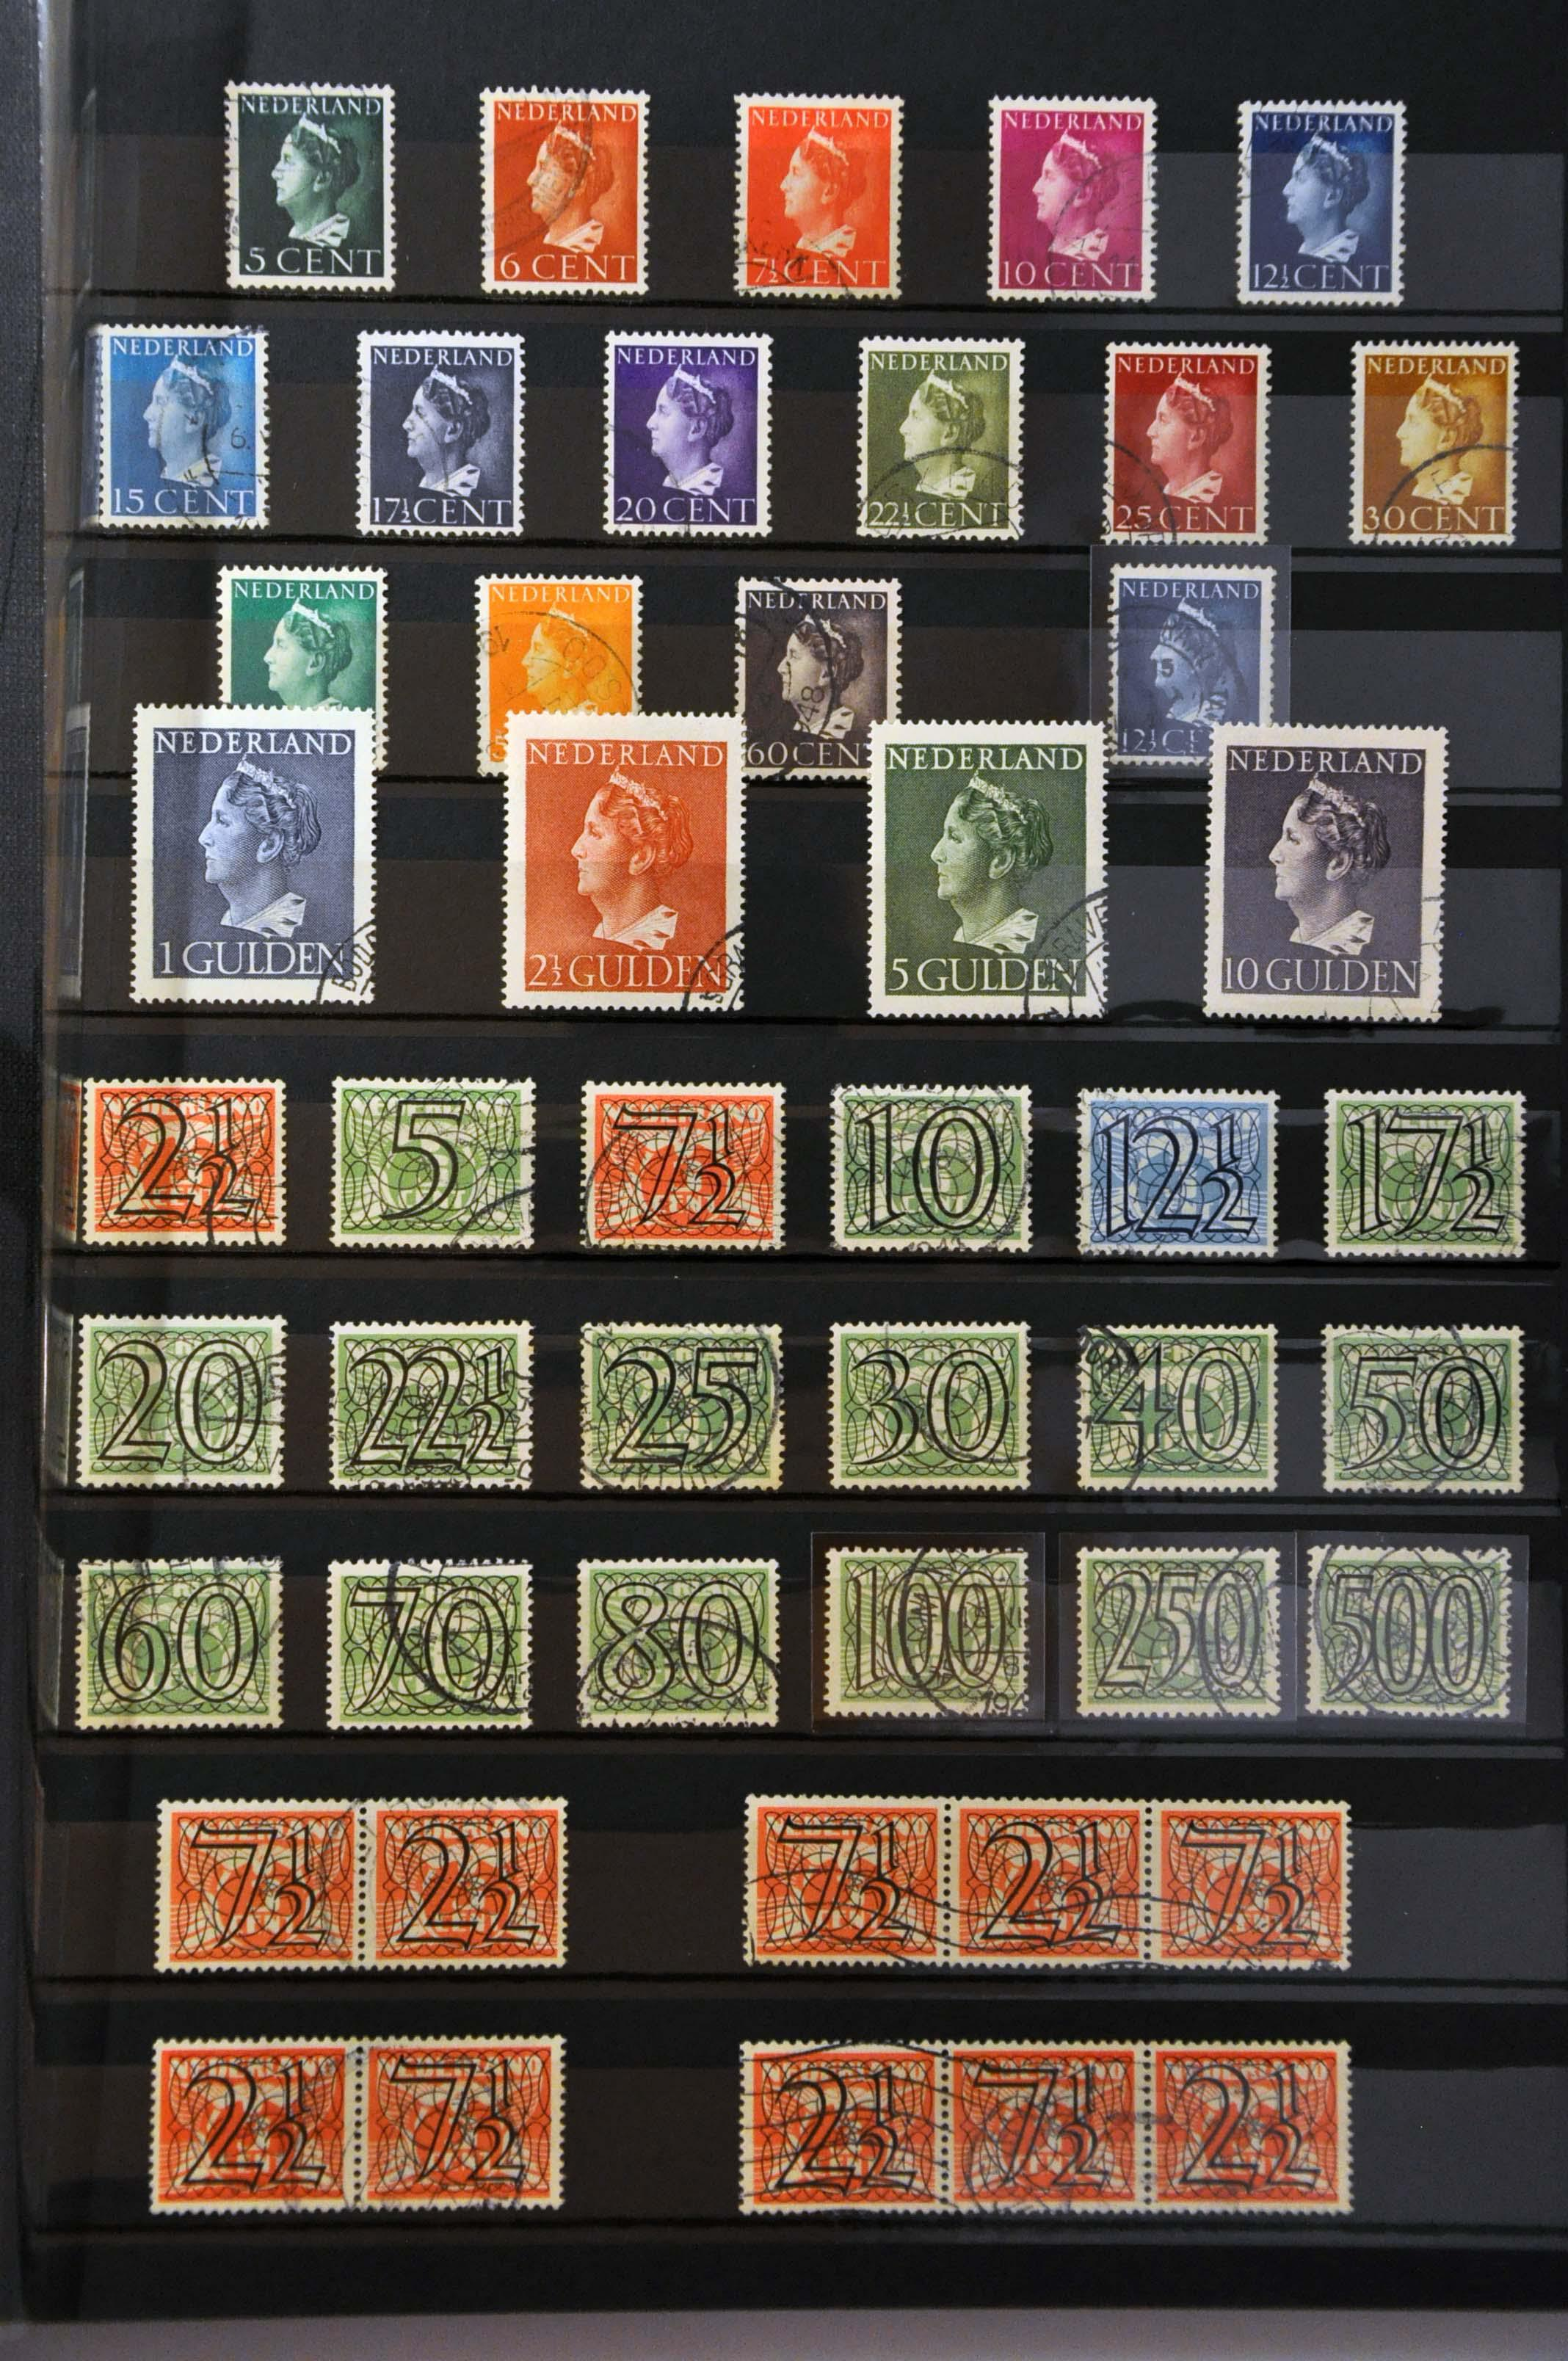 Lot 1477 - Netherlands and former colonies Netherlands -  Corinphila Veilingen Auction 239: General sale